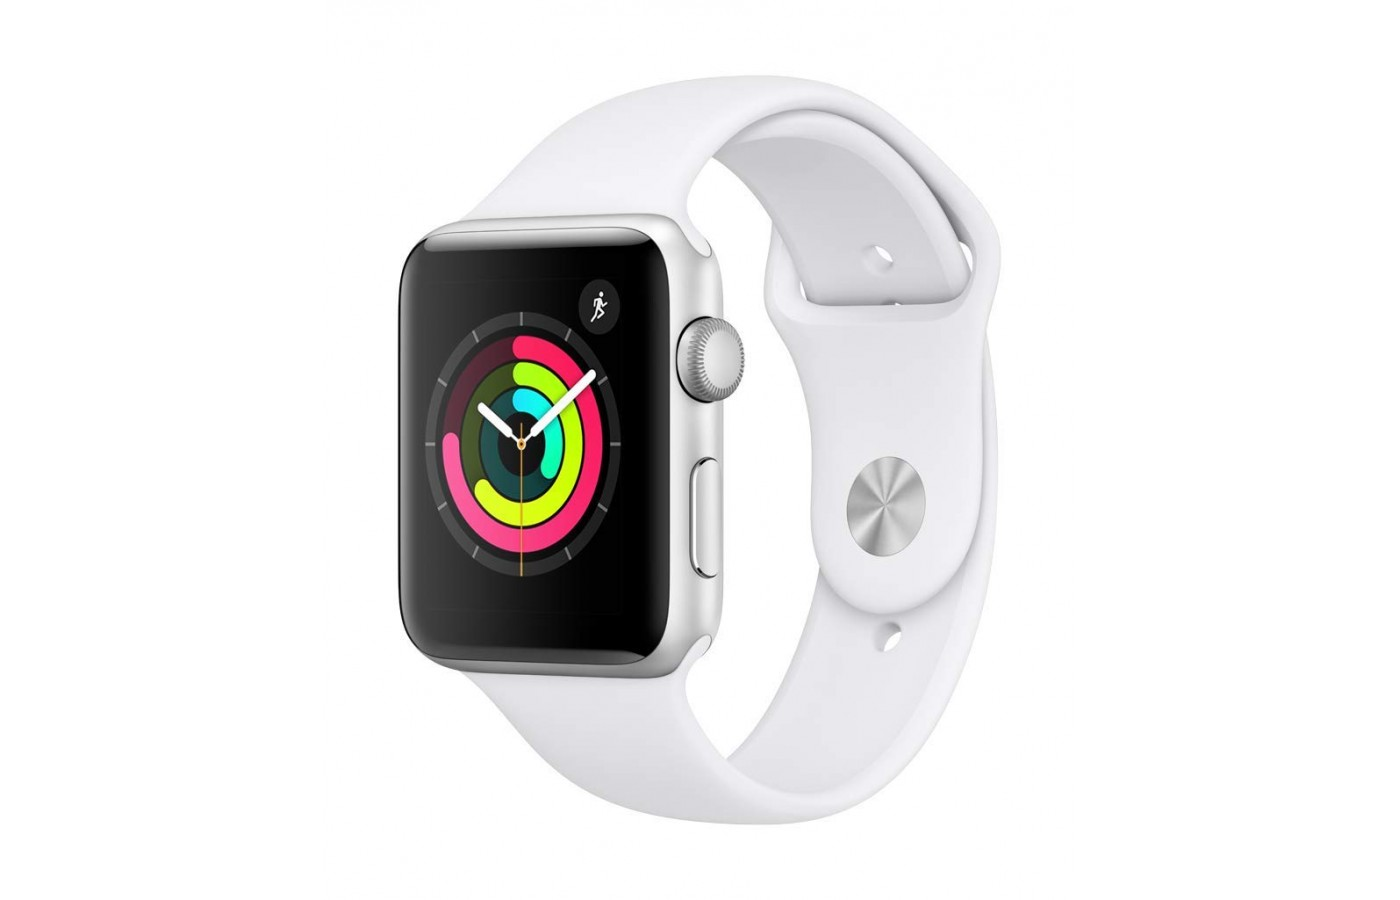 This particular smart watch is available in two base colors, with a special edition option.